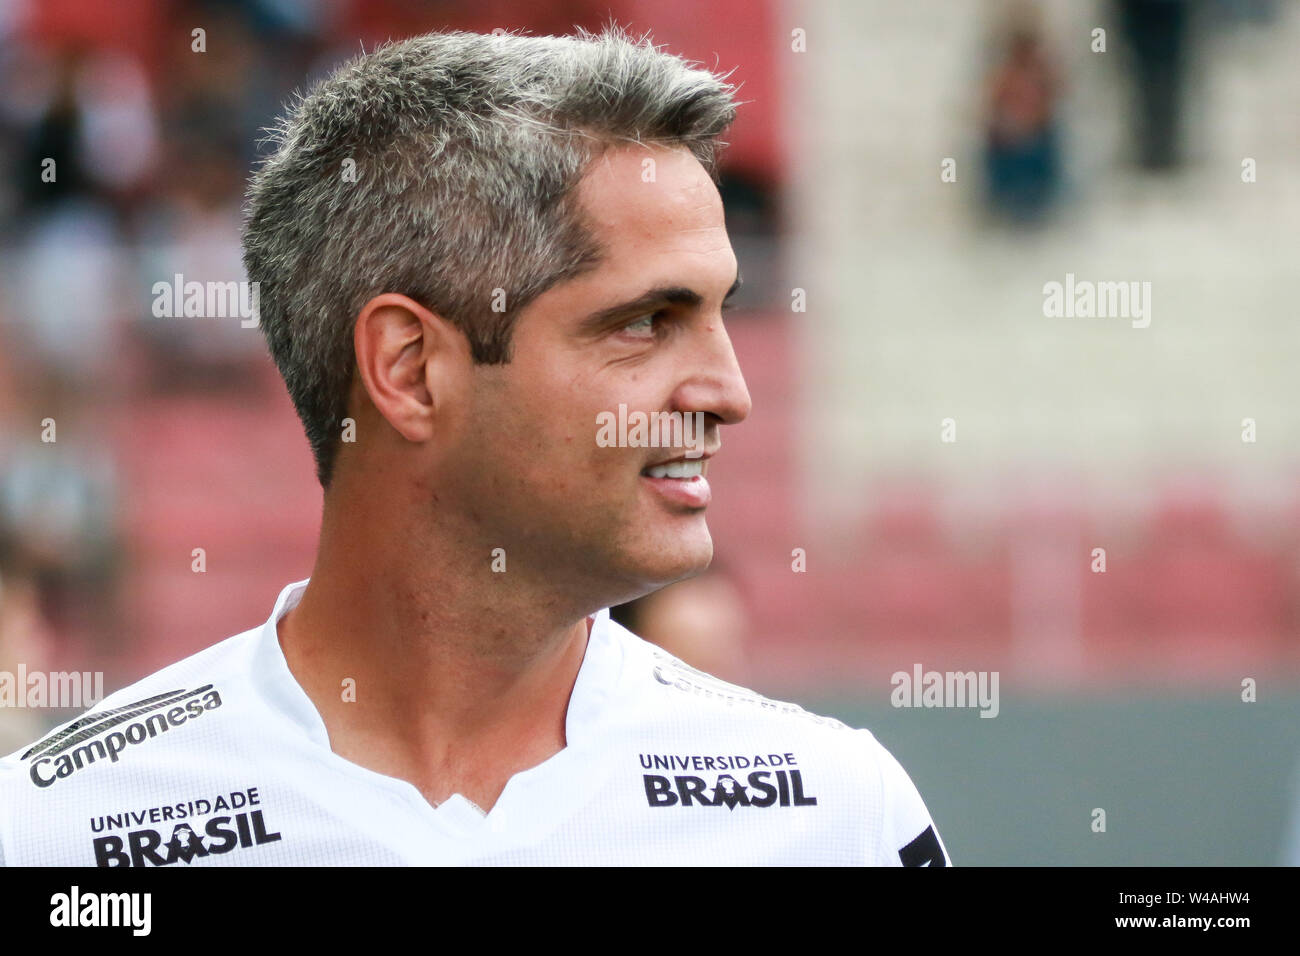 Belo Horizonte, Brazil. 21st July, 2019. MG vs Fortaleza, match valid for the 2019 Brazilian Championship, held at Arena Independência, Belo Horizonte, MG. Credit: Dudu Macedo/FotoArena/Alamy Live News - Stock Image